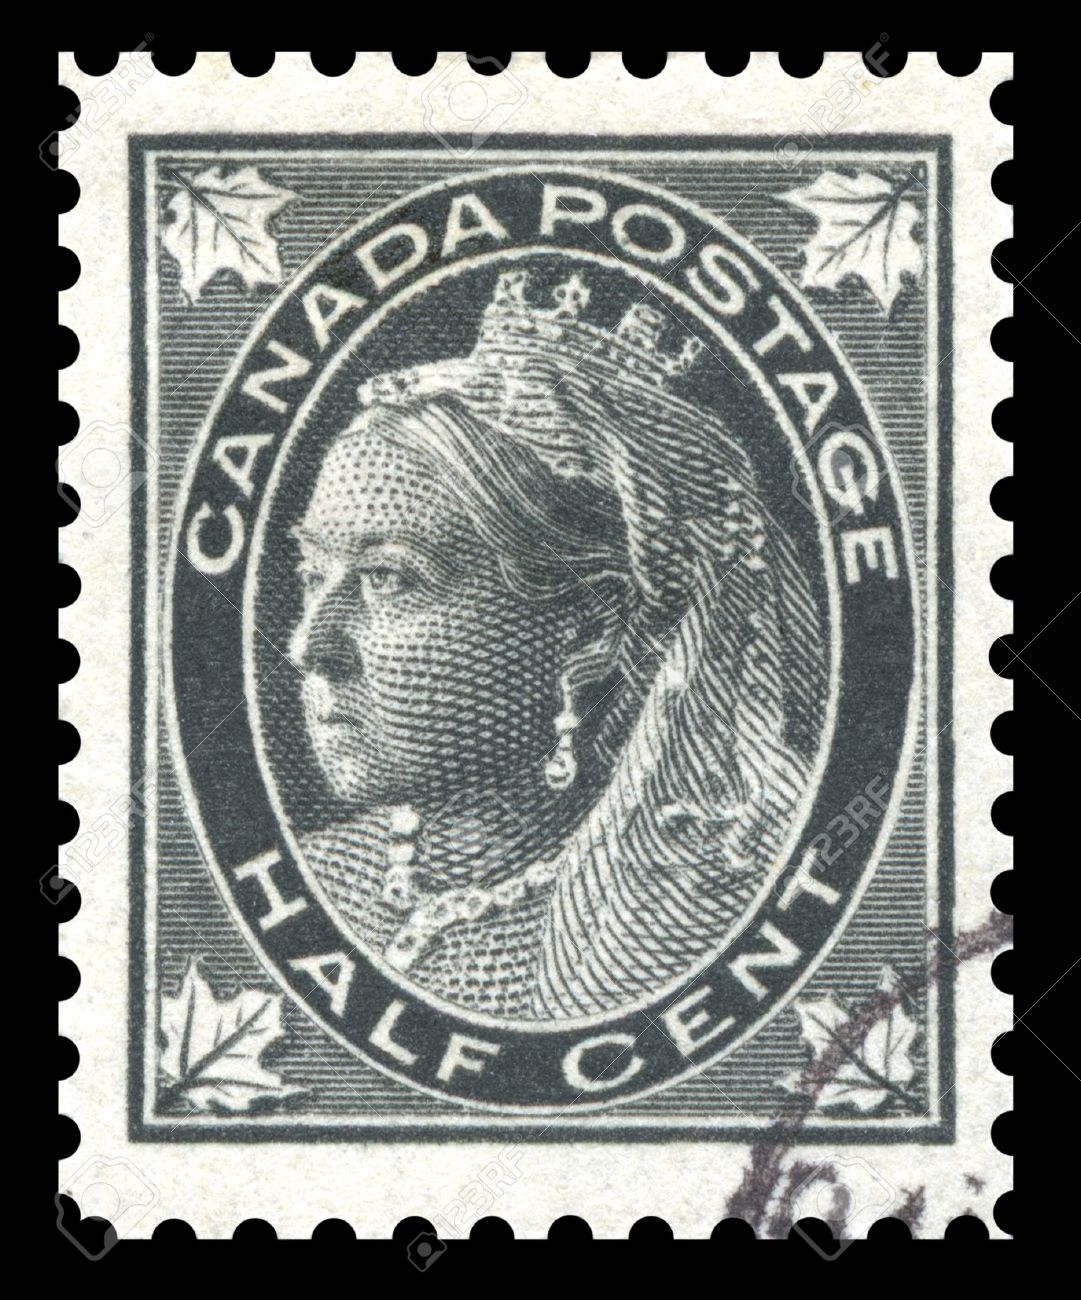 Antique Late 19th Century Canada Black Half Cent Postage Stamp Showing An Engraved Image Of Queen